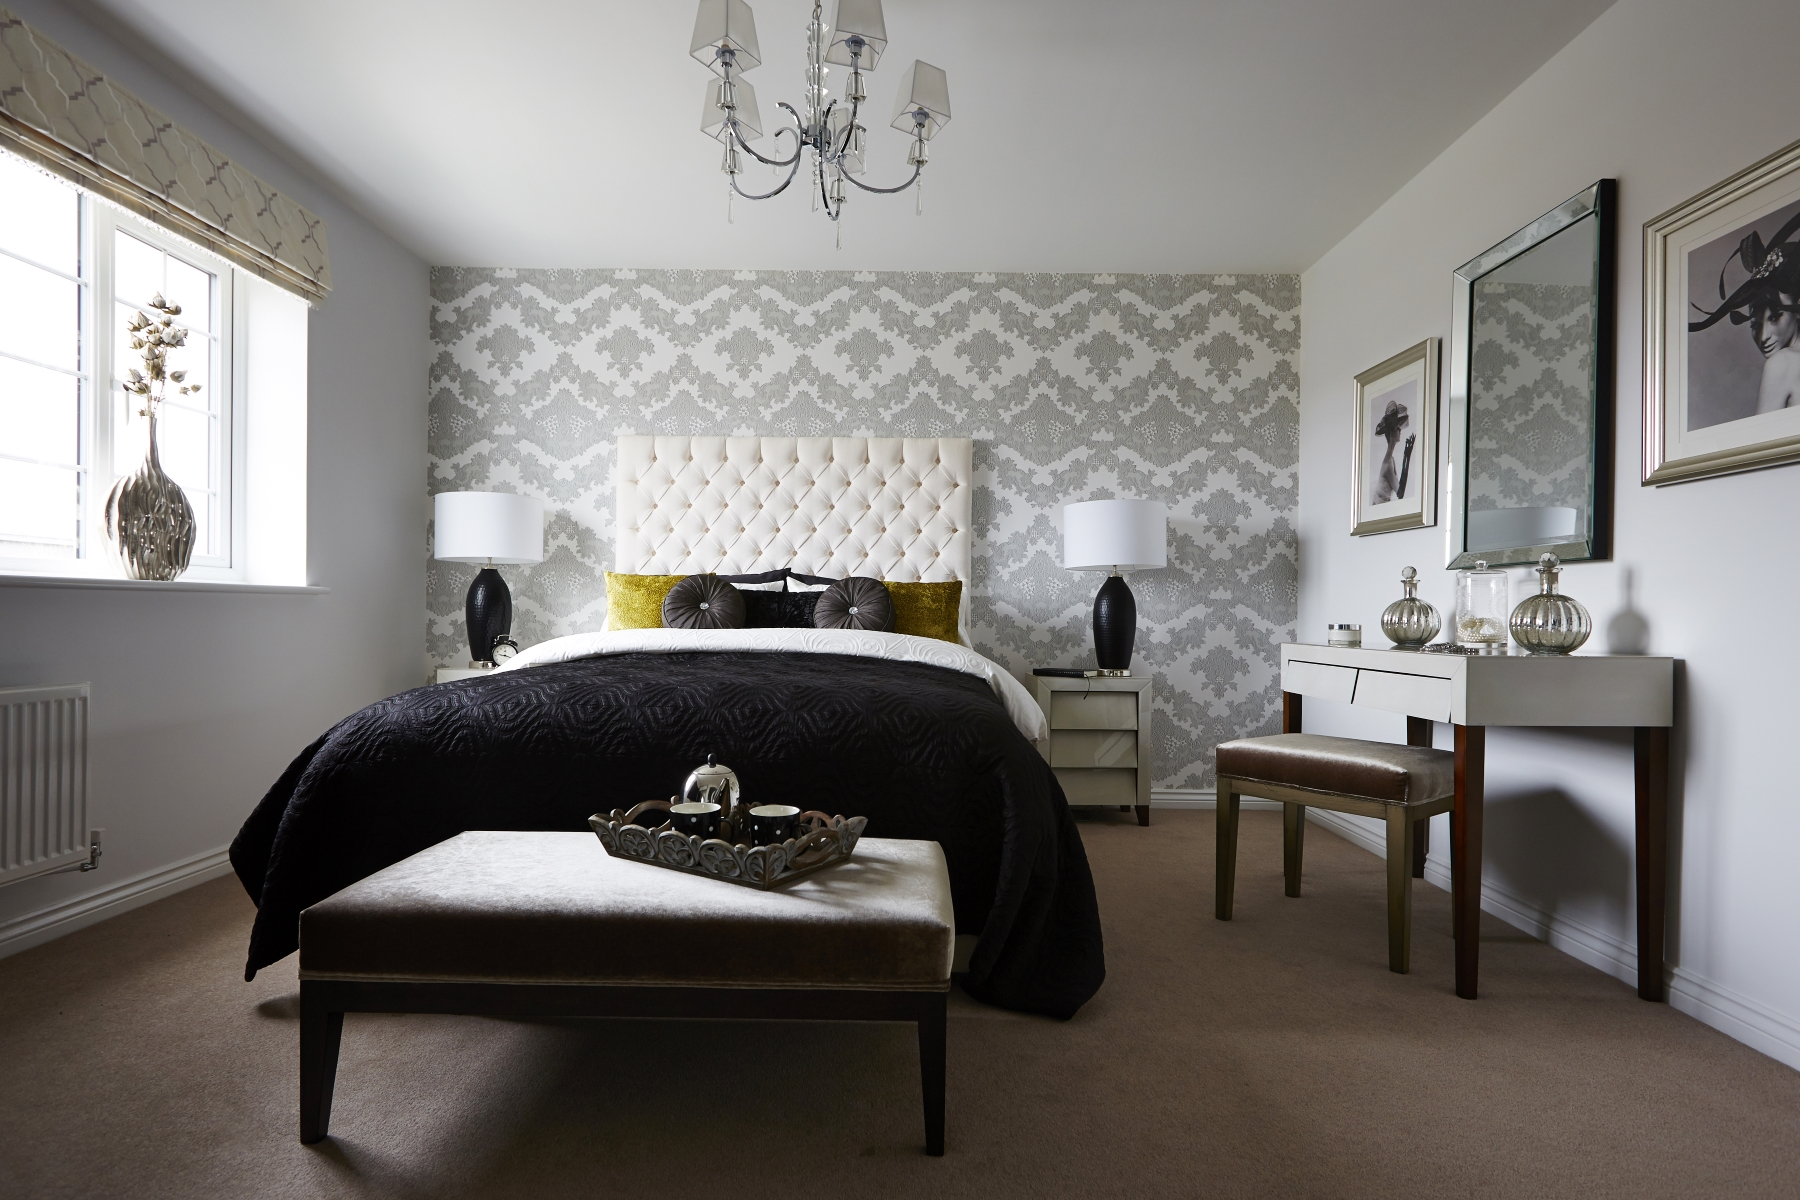 TW  Mids_ Beaumont Meadow_PD51_Lavenham_Bedroom 1